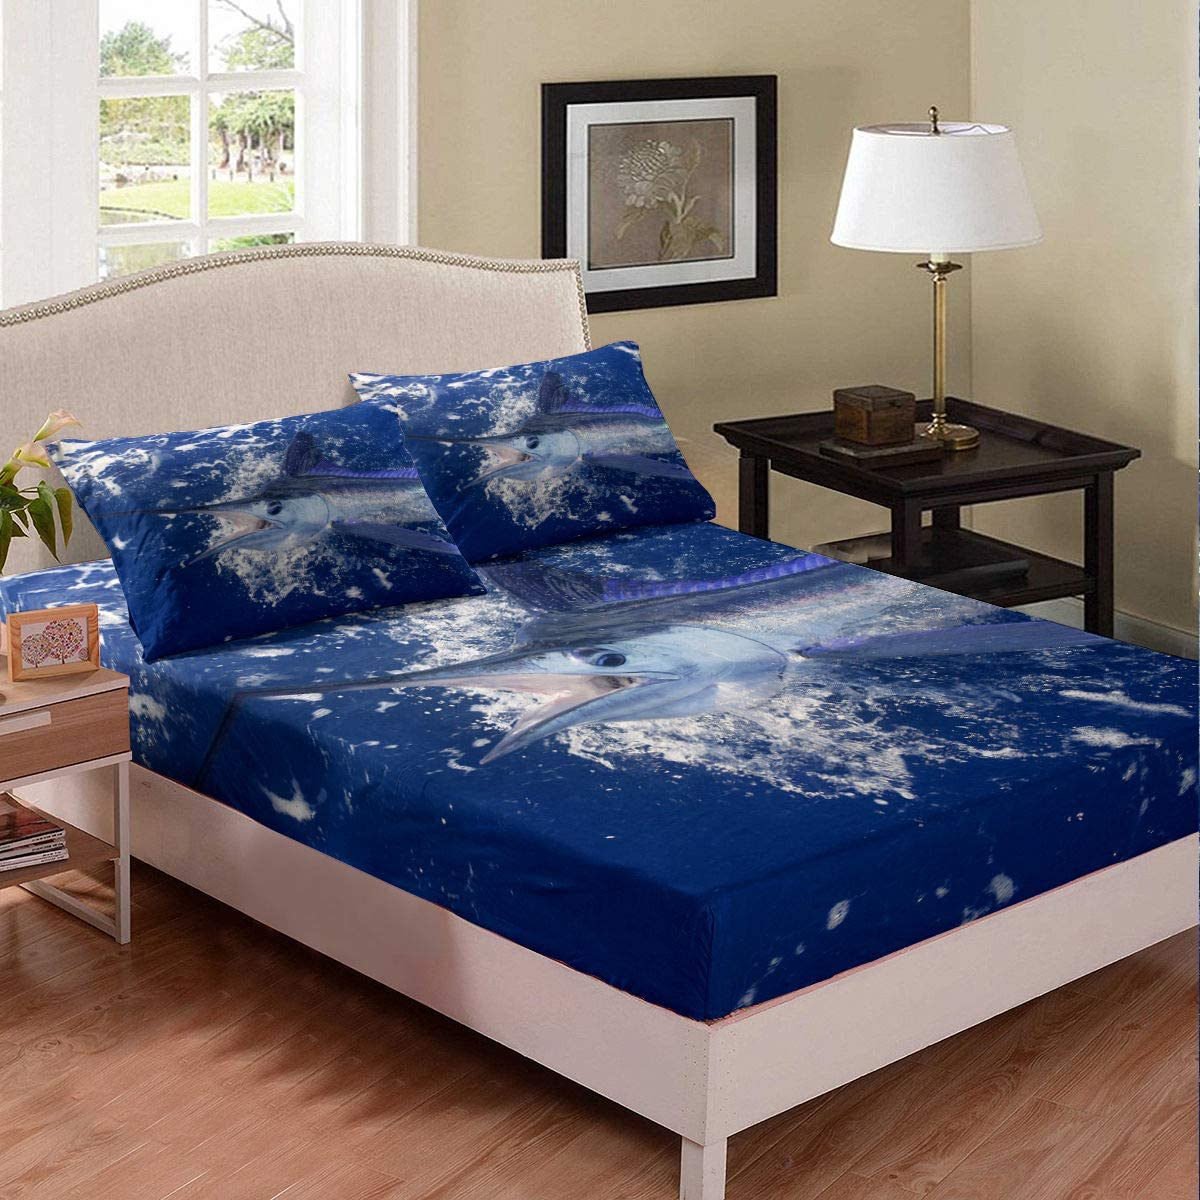 Marlin Swordfish Fitted Sheet Navy Blue Ocean Bed Cover Nautical Deep Sea Fish Bedding Set For Kids Boys Girls Seafood Fishermen Coastal Bedclothes Bedroom Decor With 2 Pillow Cases Queen Size